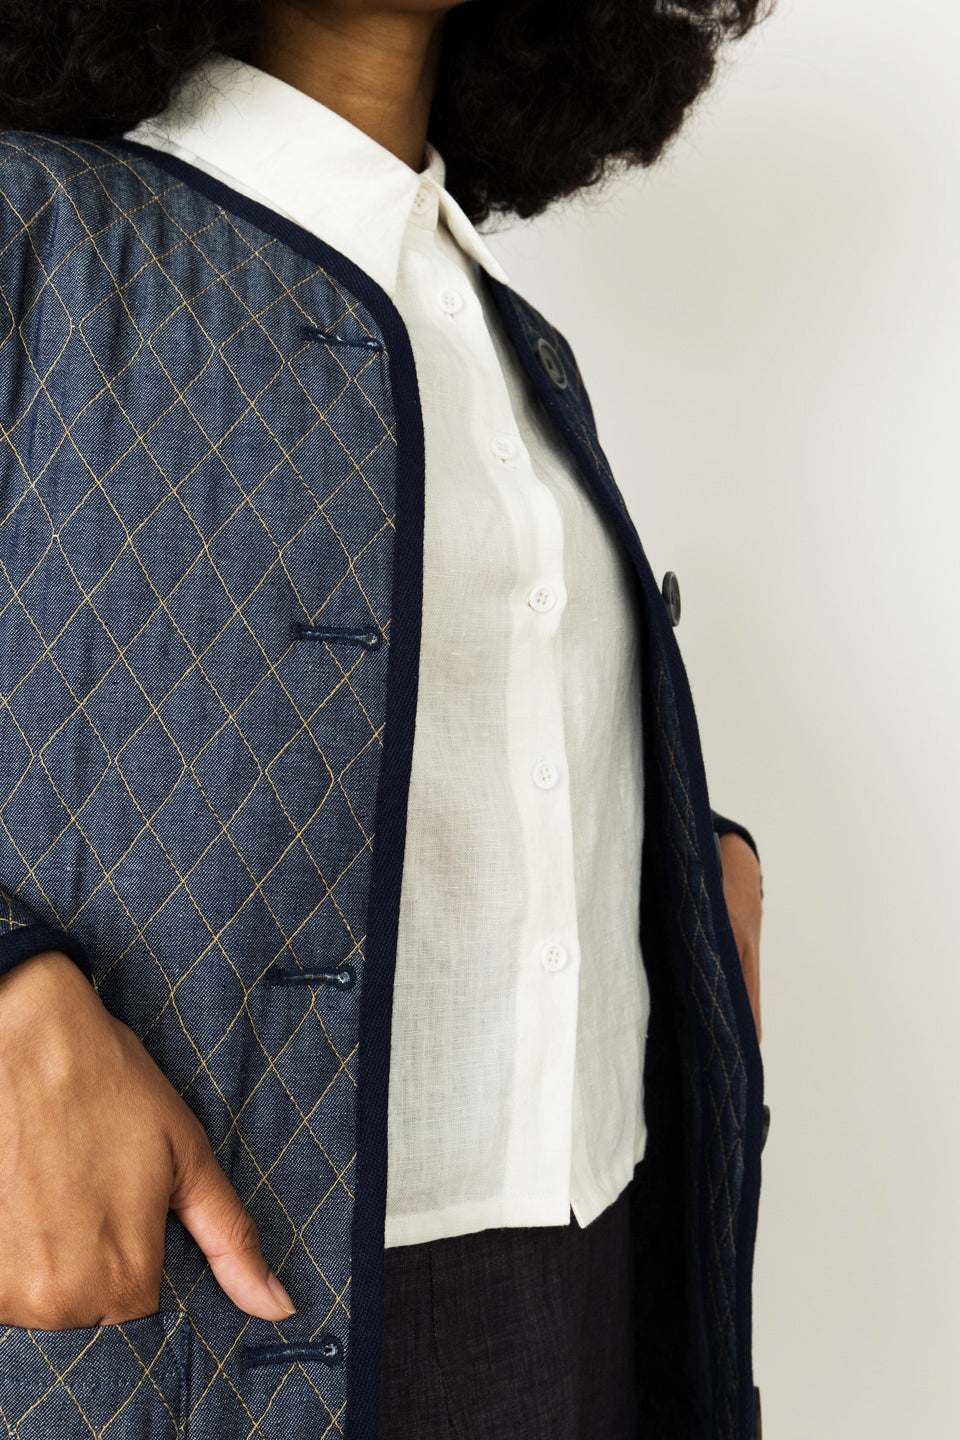 Emerson Fry Quilted Topper-Blue Jacket-Quilted Jacket